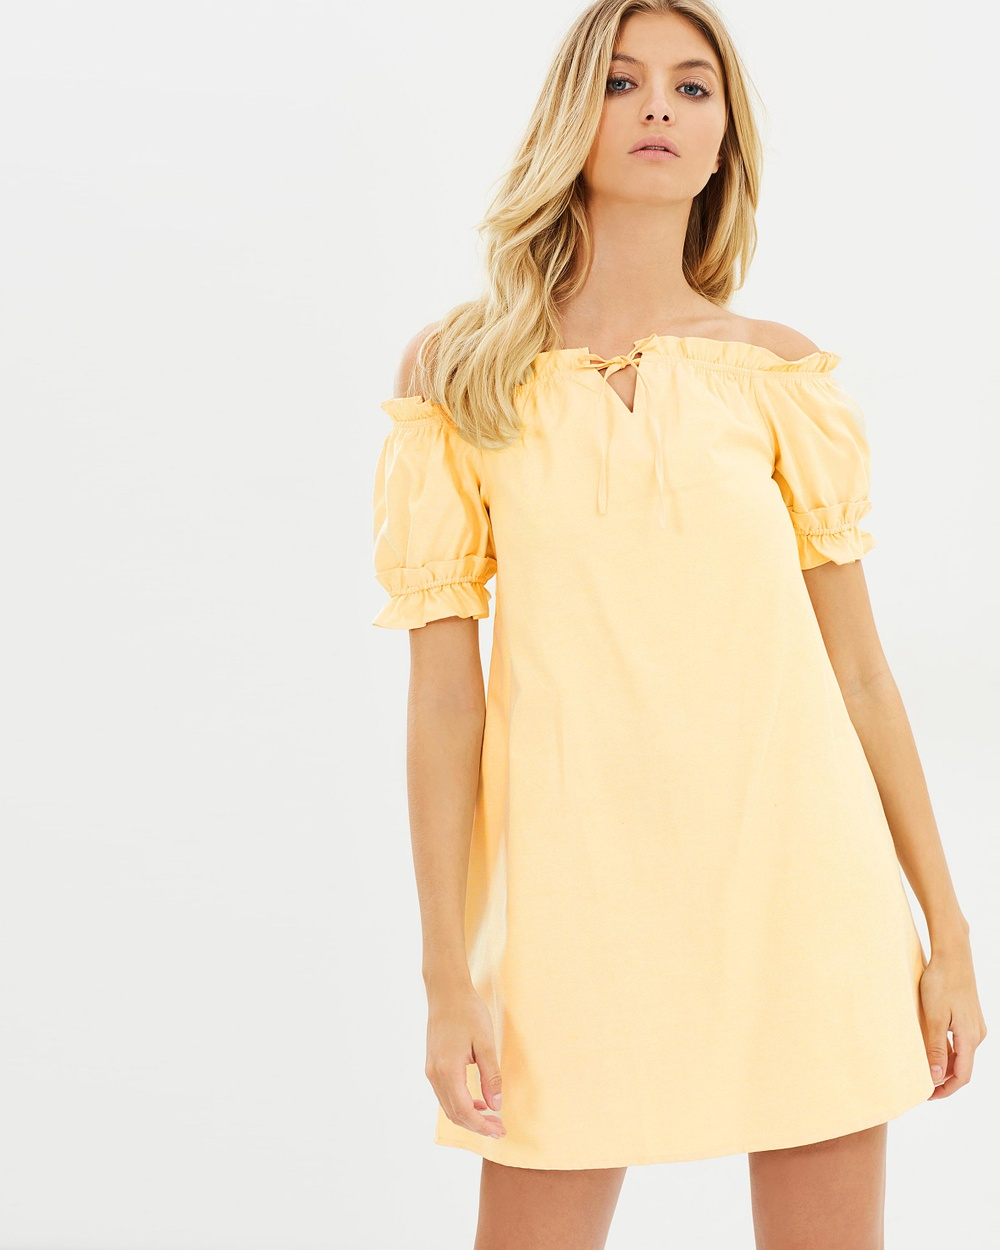 Atmos & Here ICONIC EXCLUSIVE Lulu Off Shoulder Dress Dresses Lemon Sherbet ICONIC EXCLUSIVE Lulu Off-Shoulder Dress